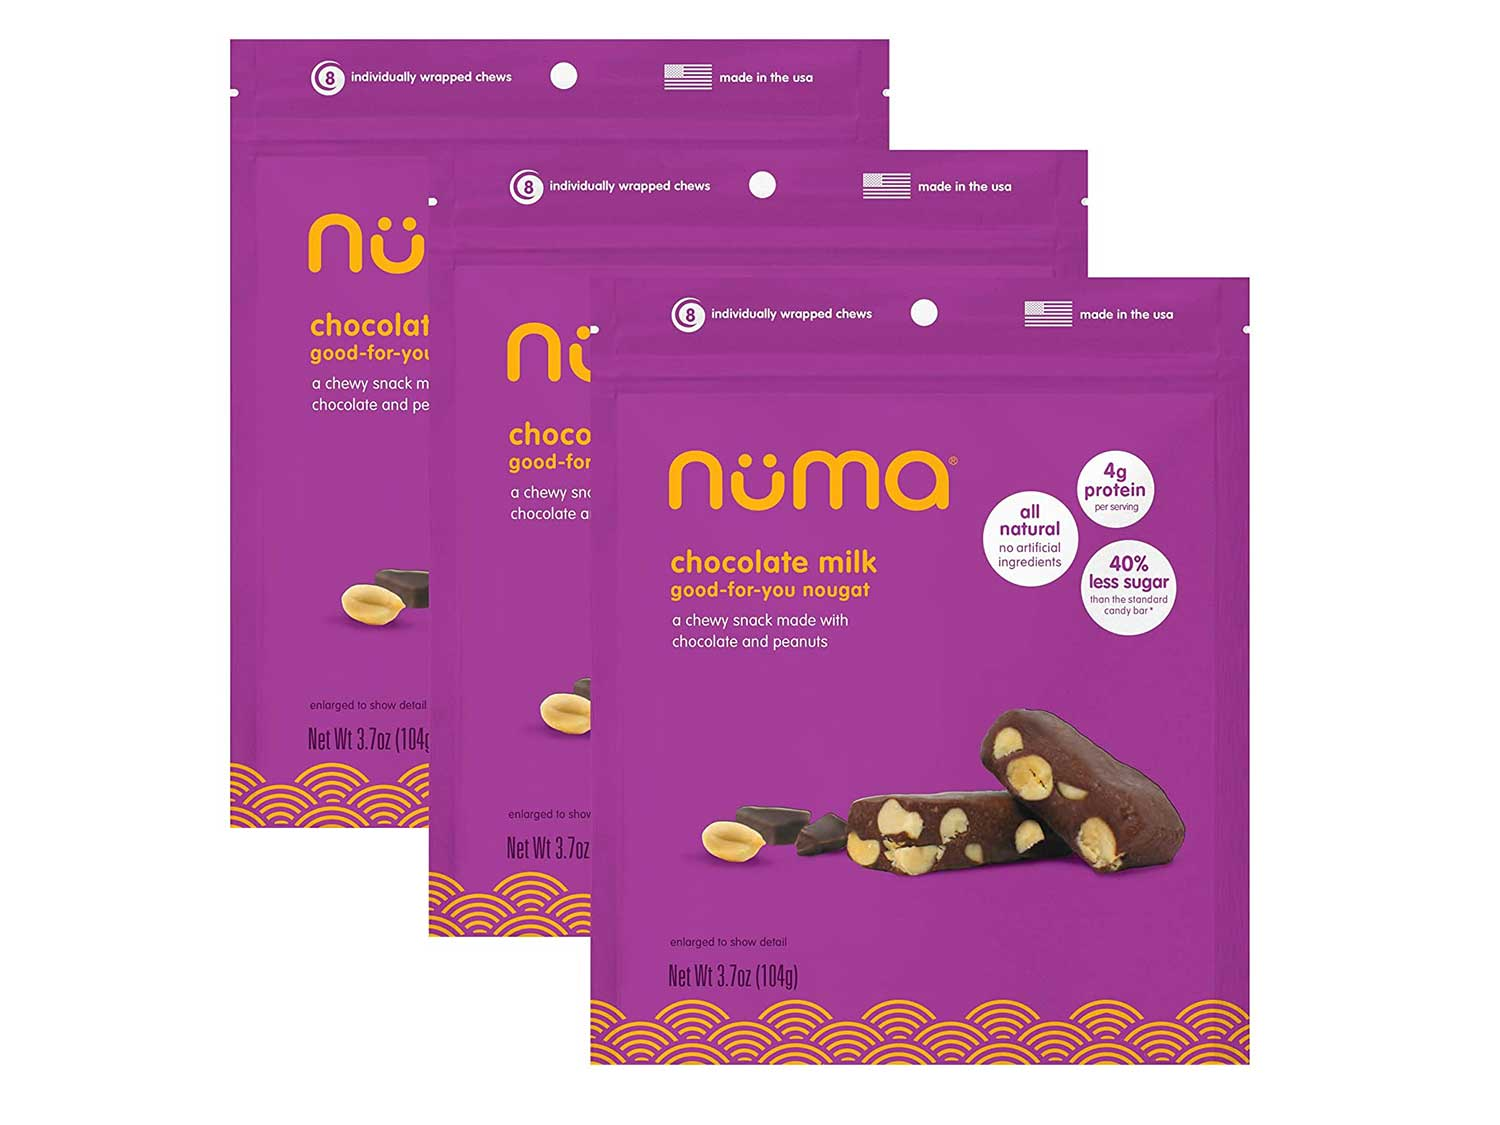 Healthy Chocolate Milk Peanut Candy - Low Calorie, Low Sugar, All Natural Soft Chewy Snack, High Protein, Gluten Free - 3 Bags with 24 Individually Wrapped Chews Total